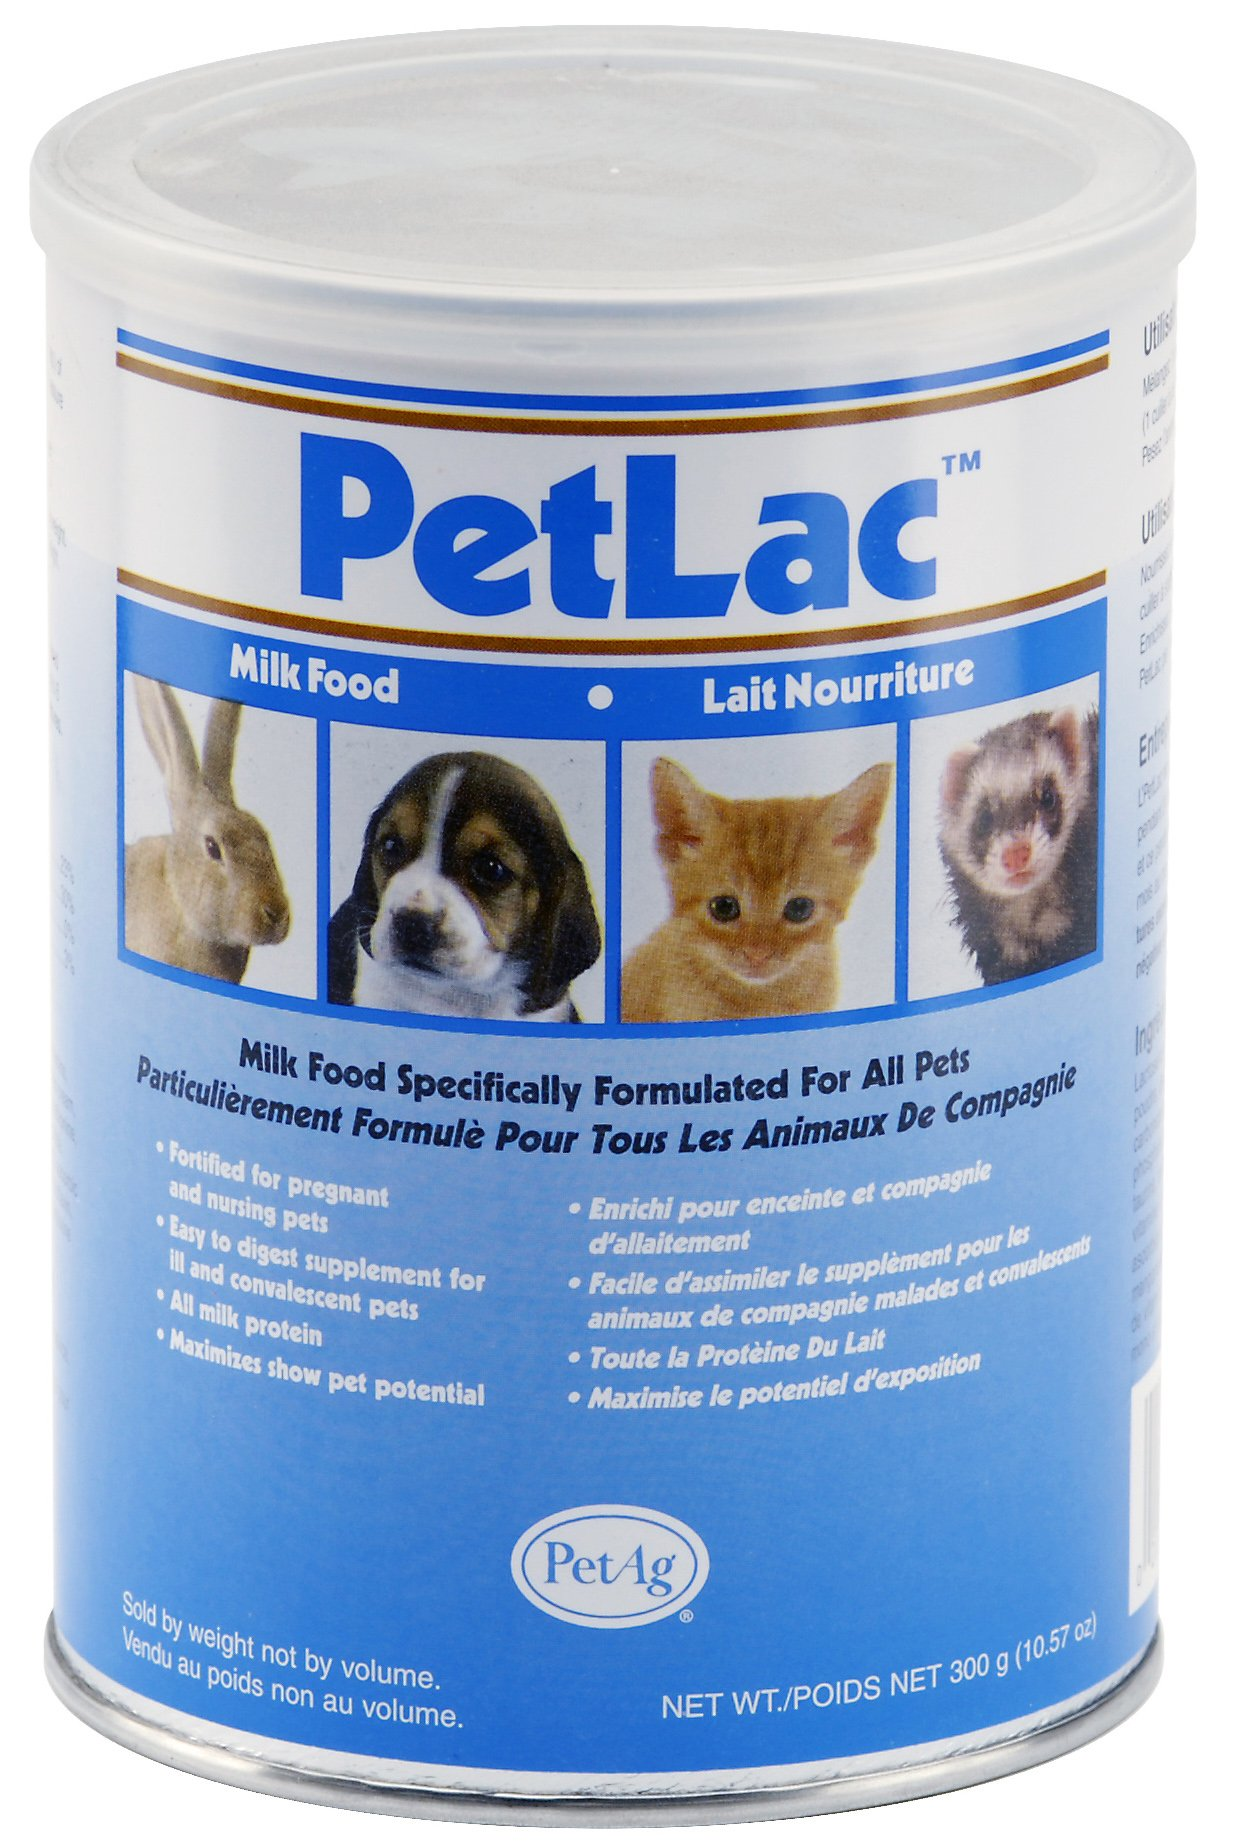 Petlac Milk Powder For Pets, 300Gm by PetLac